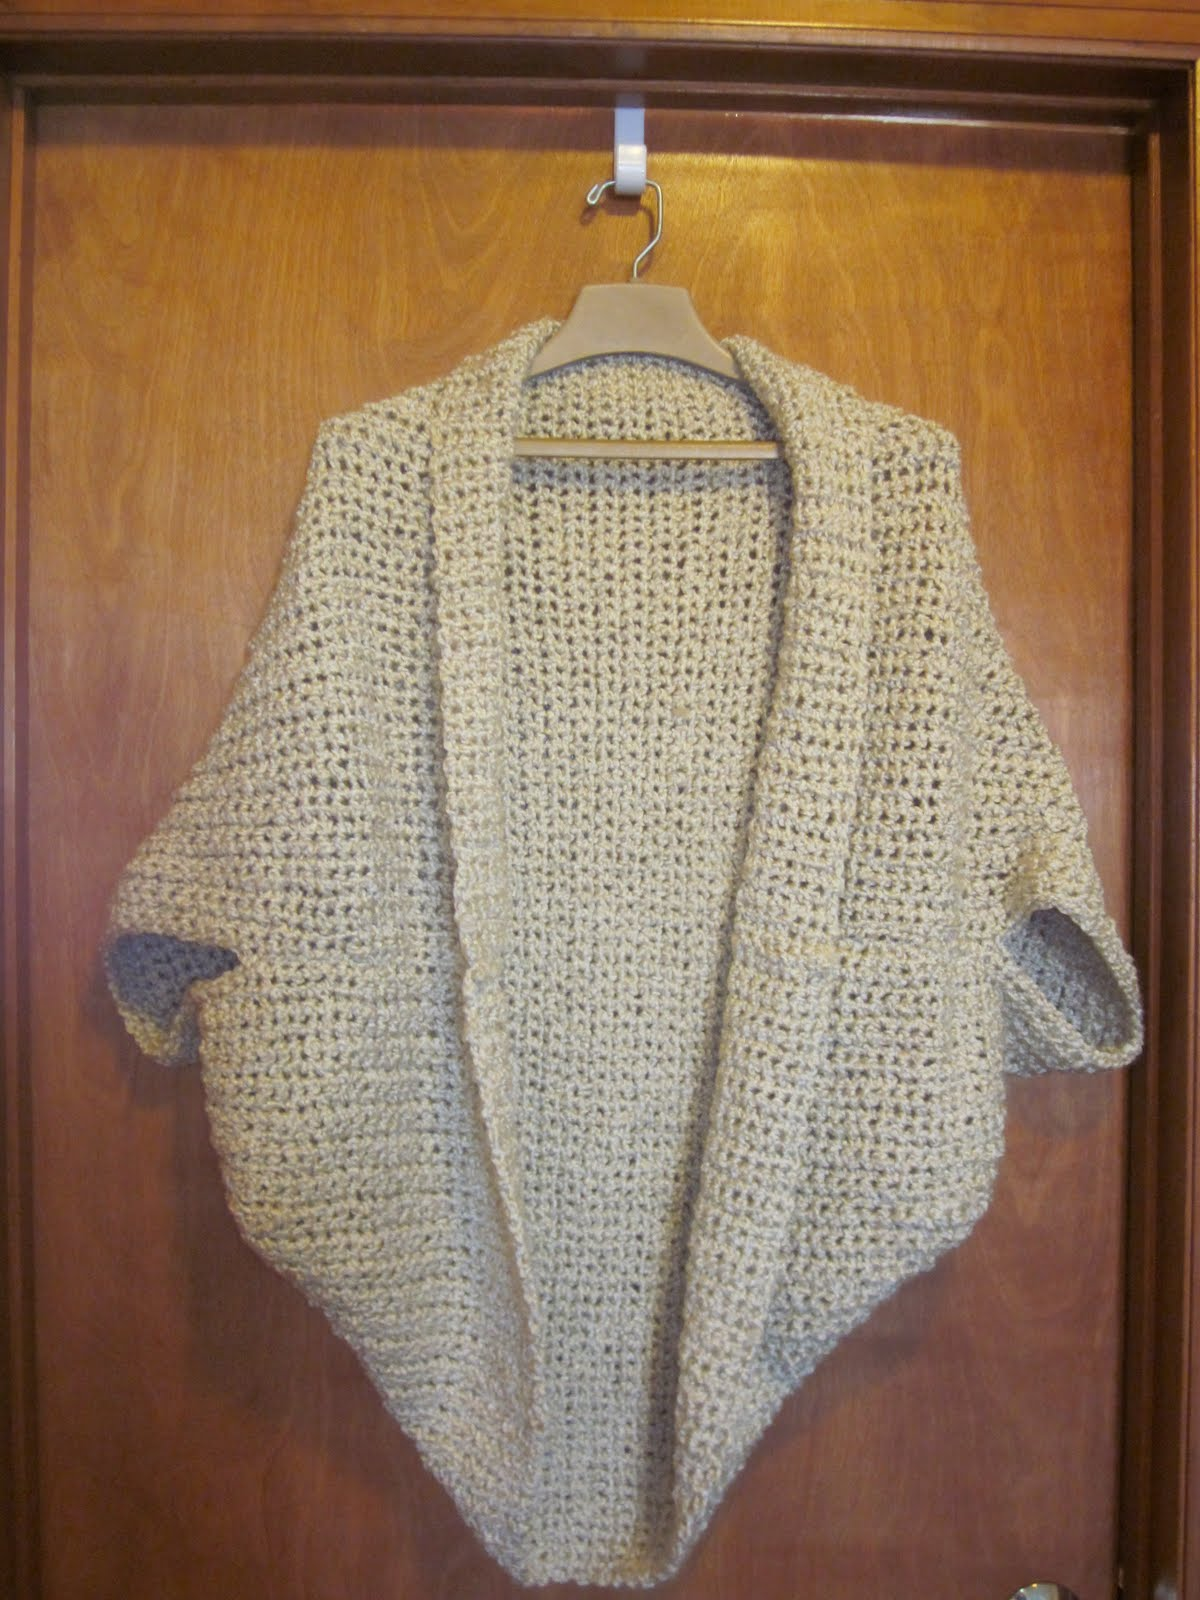 My version of the lionbrand crochet shrug: